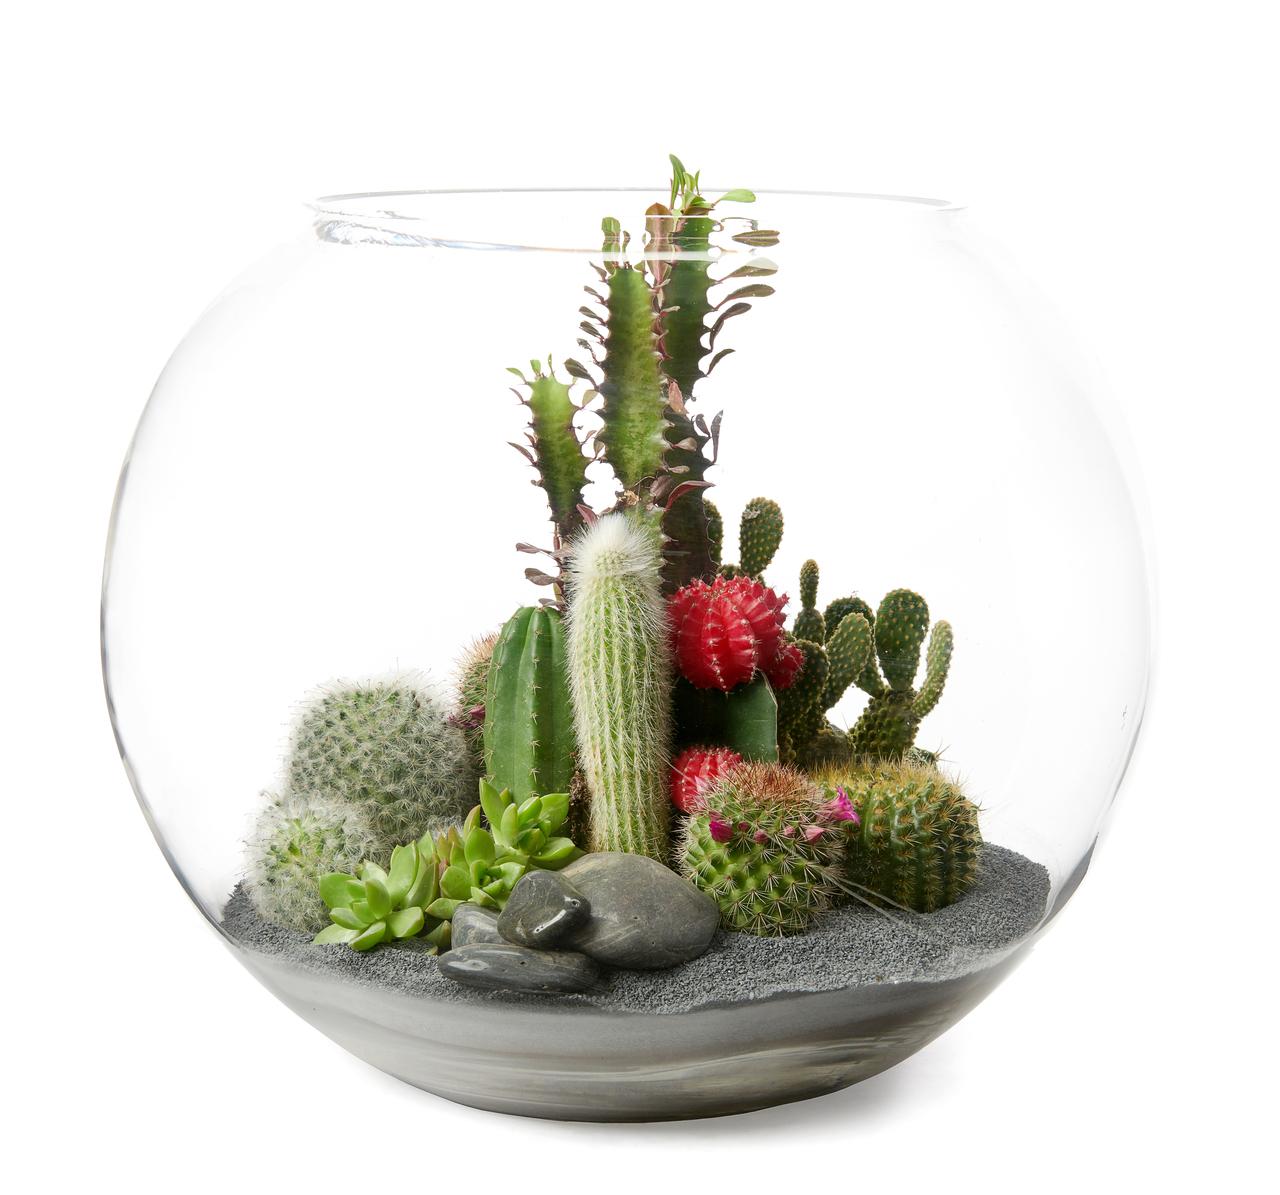 Fishbowl Medium Black Terrarium